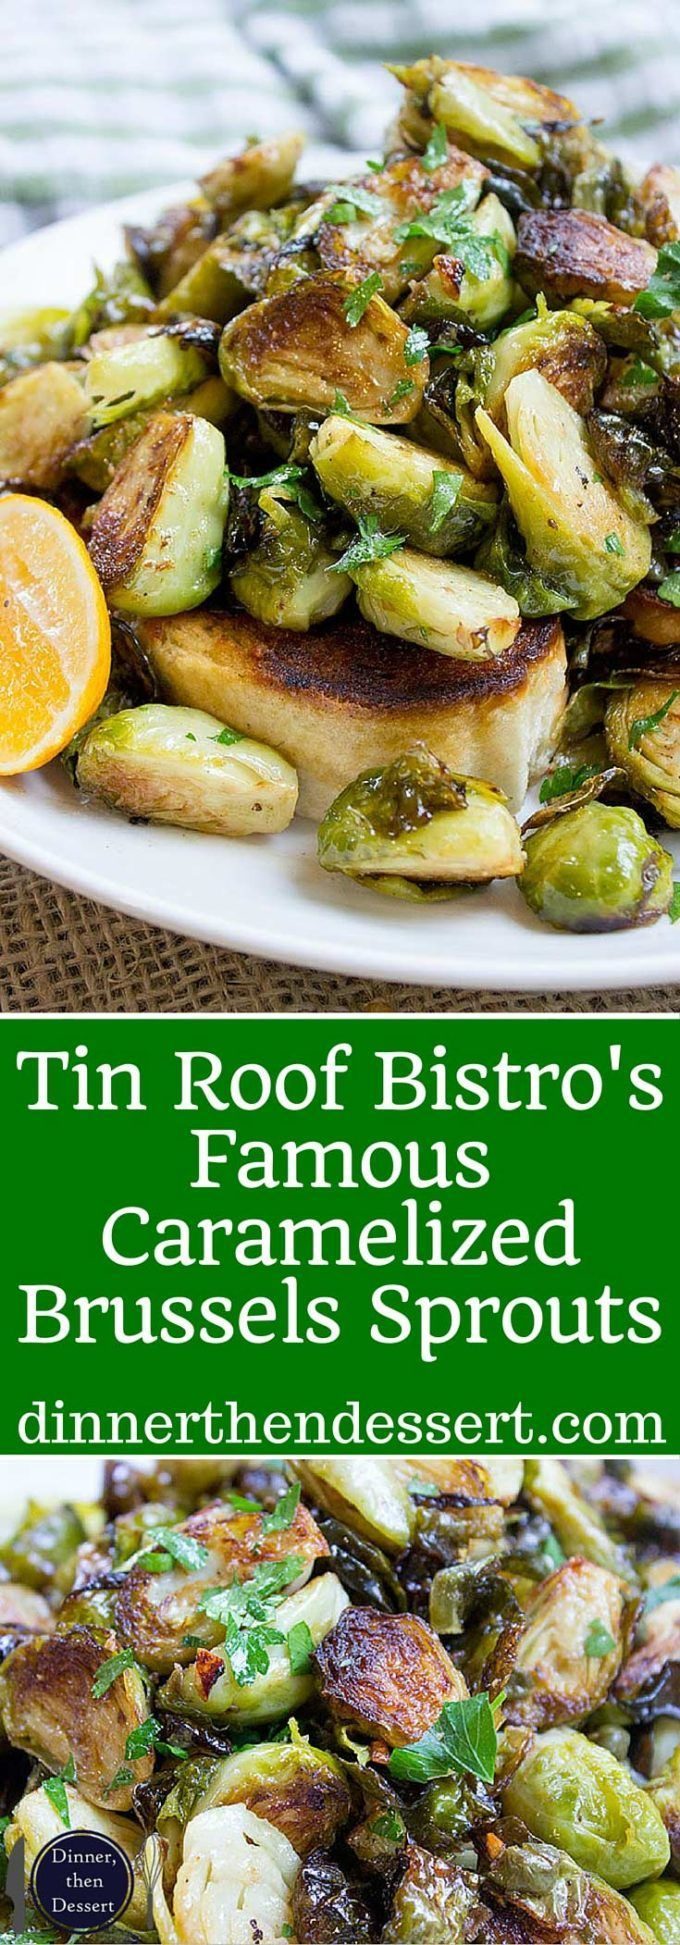 Tin Roof Bistro Brussels Sprouts are caramelized and tossed in a lemony caper butter sauce. The most popular item on the menu will make anyone a fan!